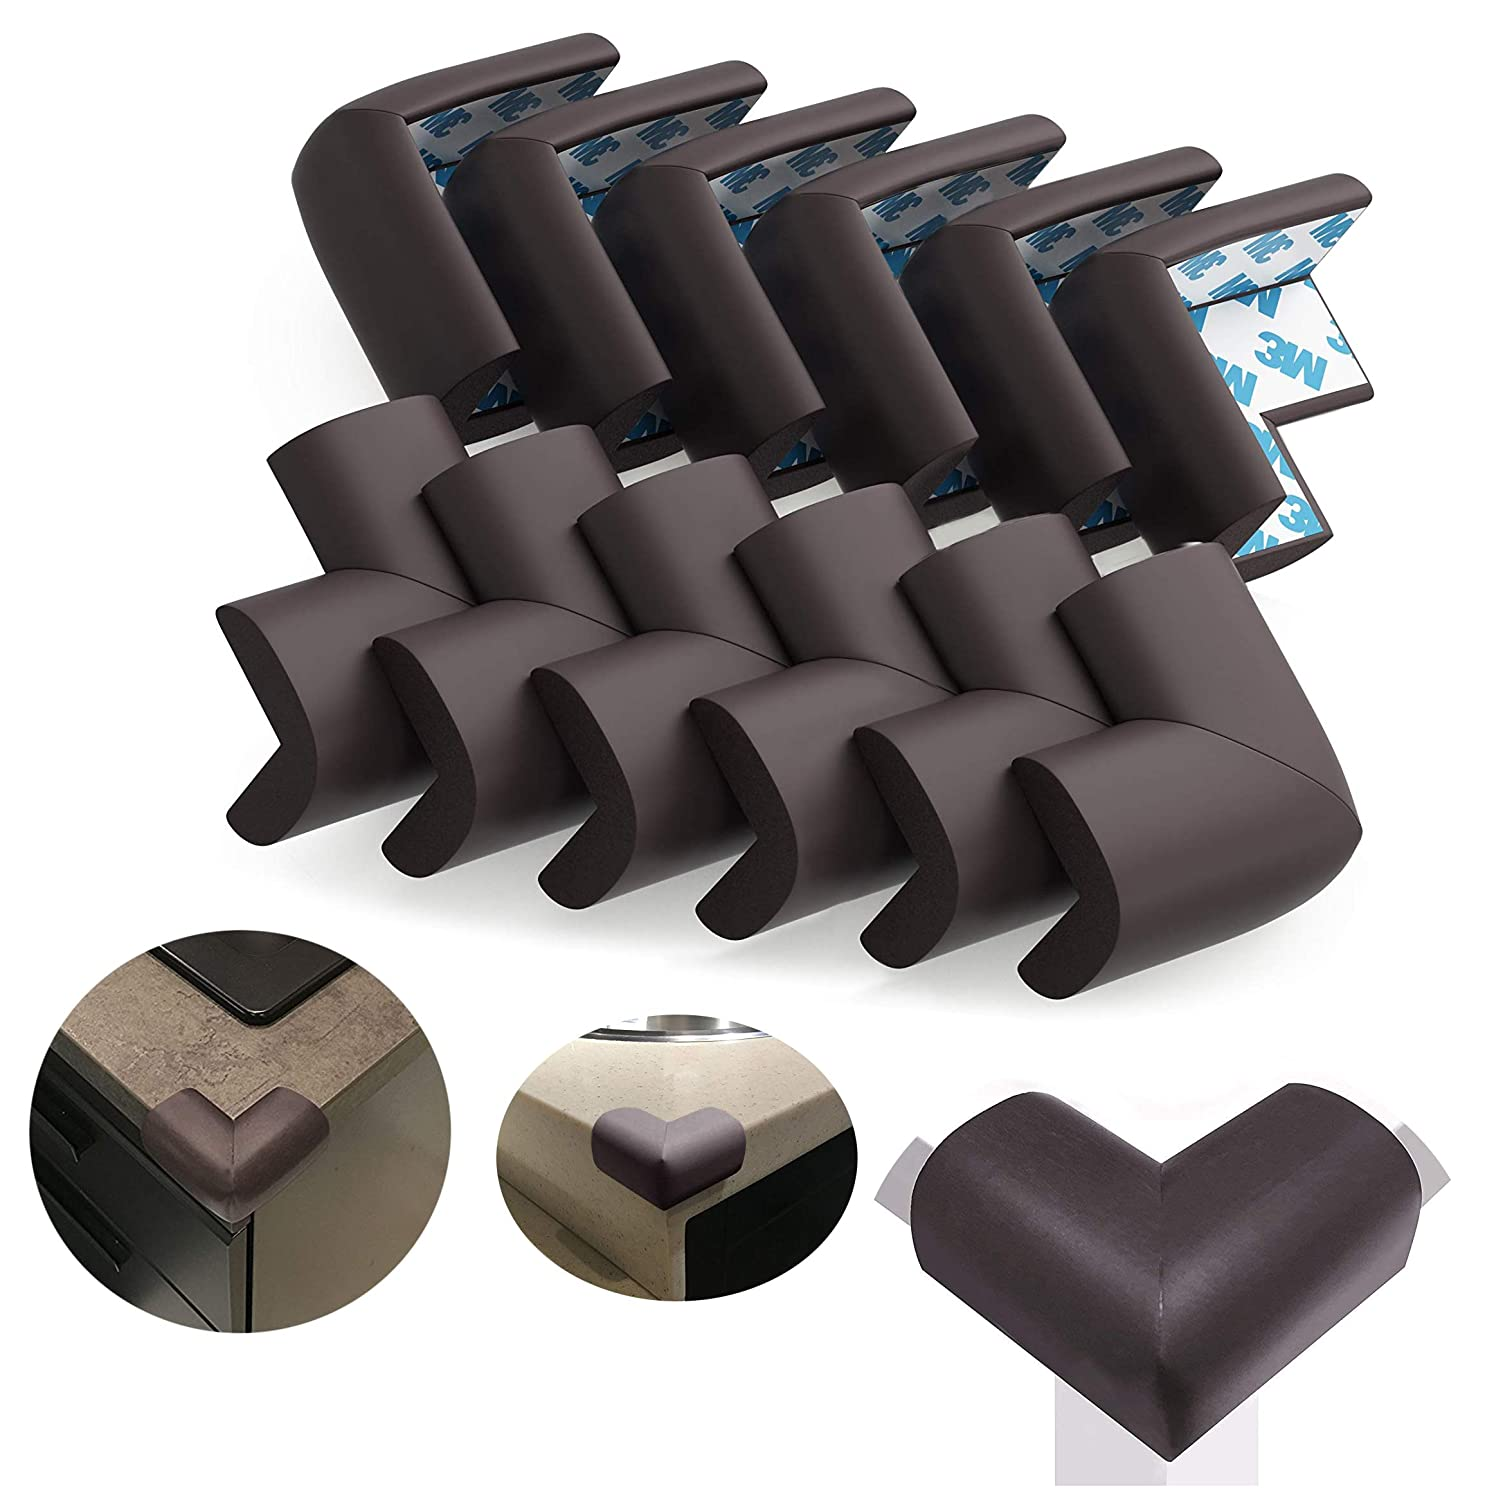 HengKe Soft Baby Proofing Corner Guards Edge Protectors,12 Piece Safety Corner Cushion,Brown Child Proofing Corner Guard Child Safety, Home Furniture Safety Bumper, Baby Proof Table Protector